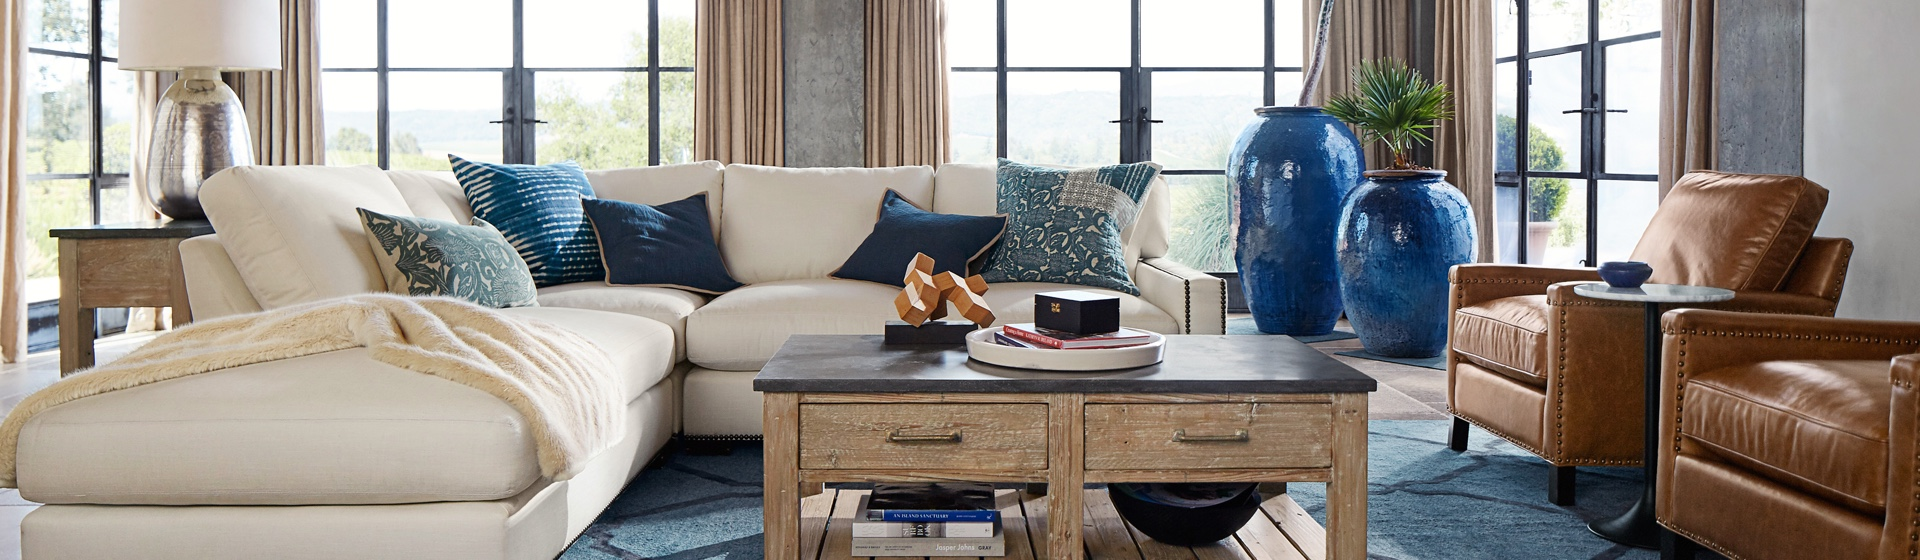 Pottery Barn Delivery Lugg